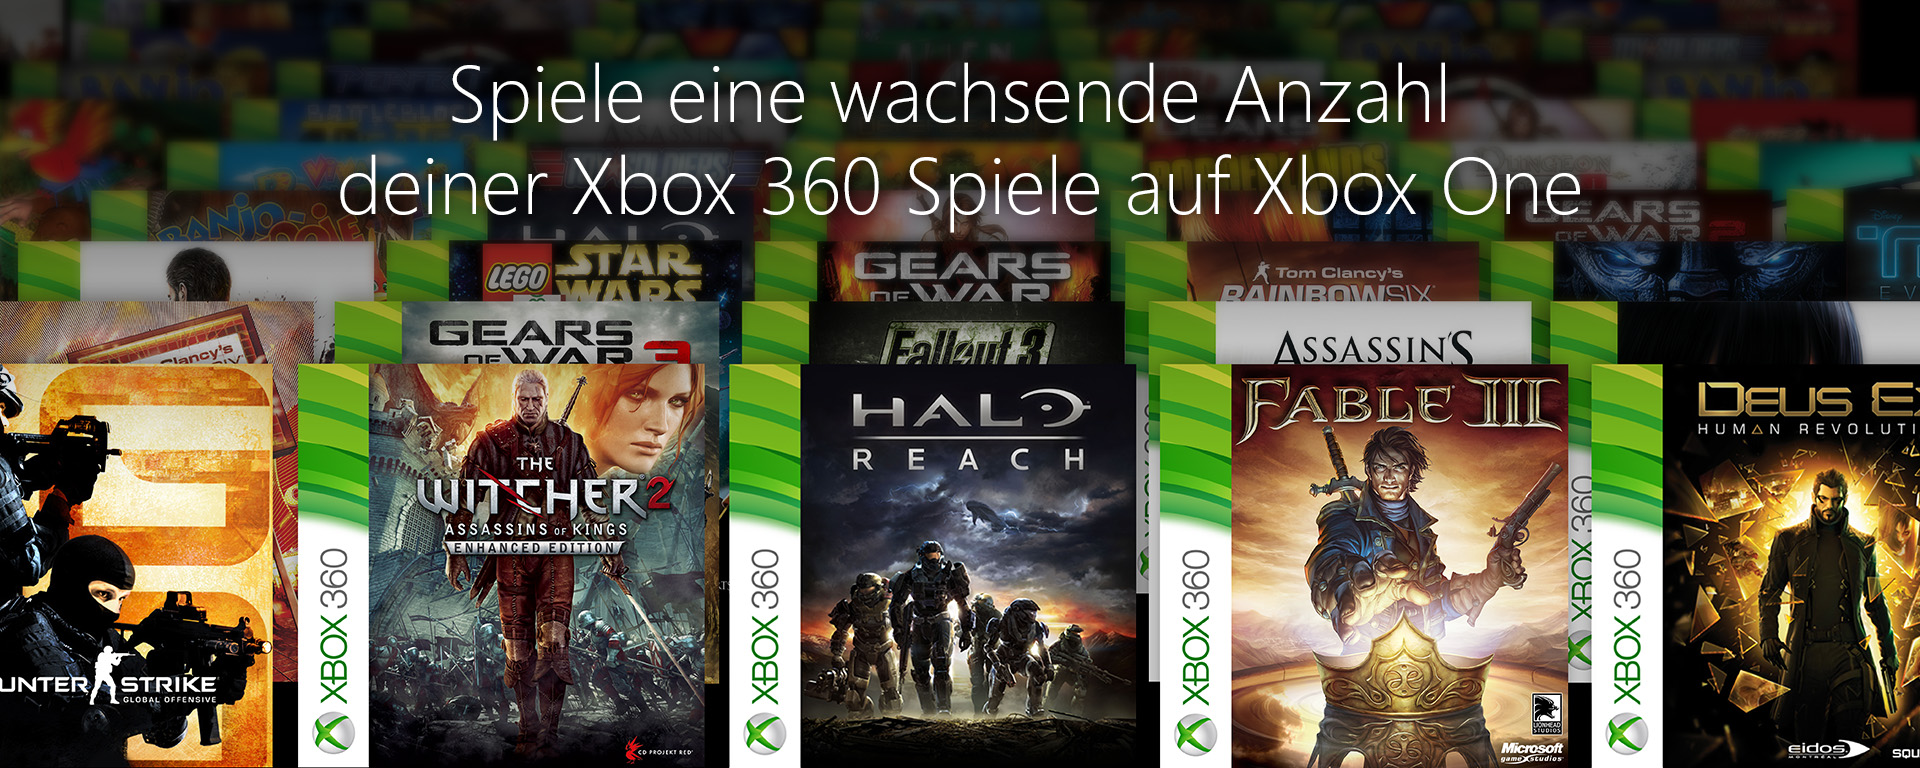 Play Xbox 360 games on Xbox One